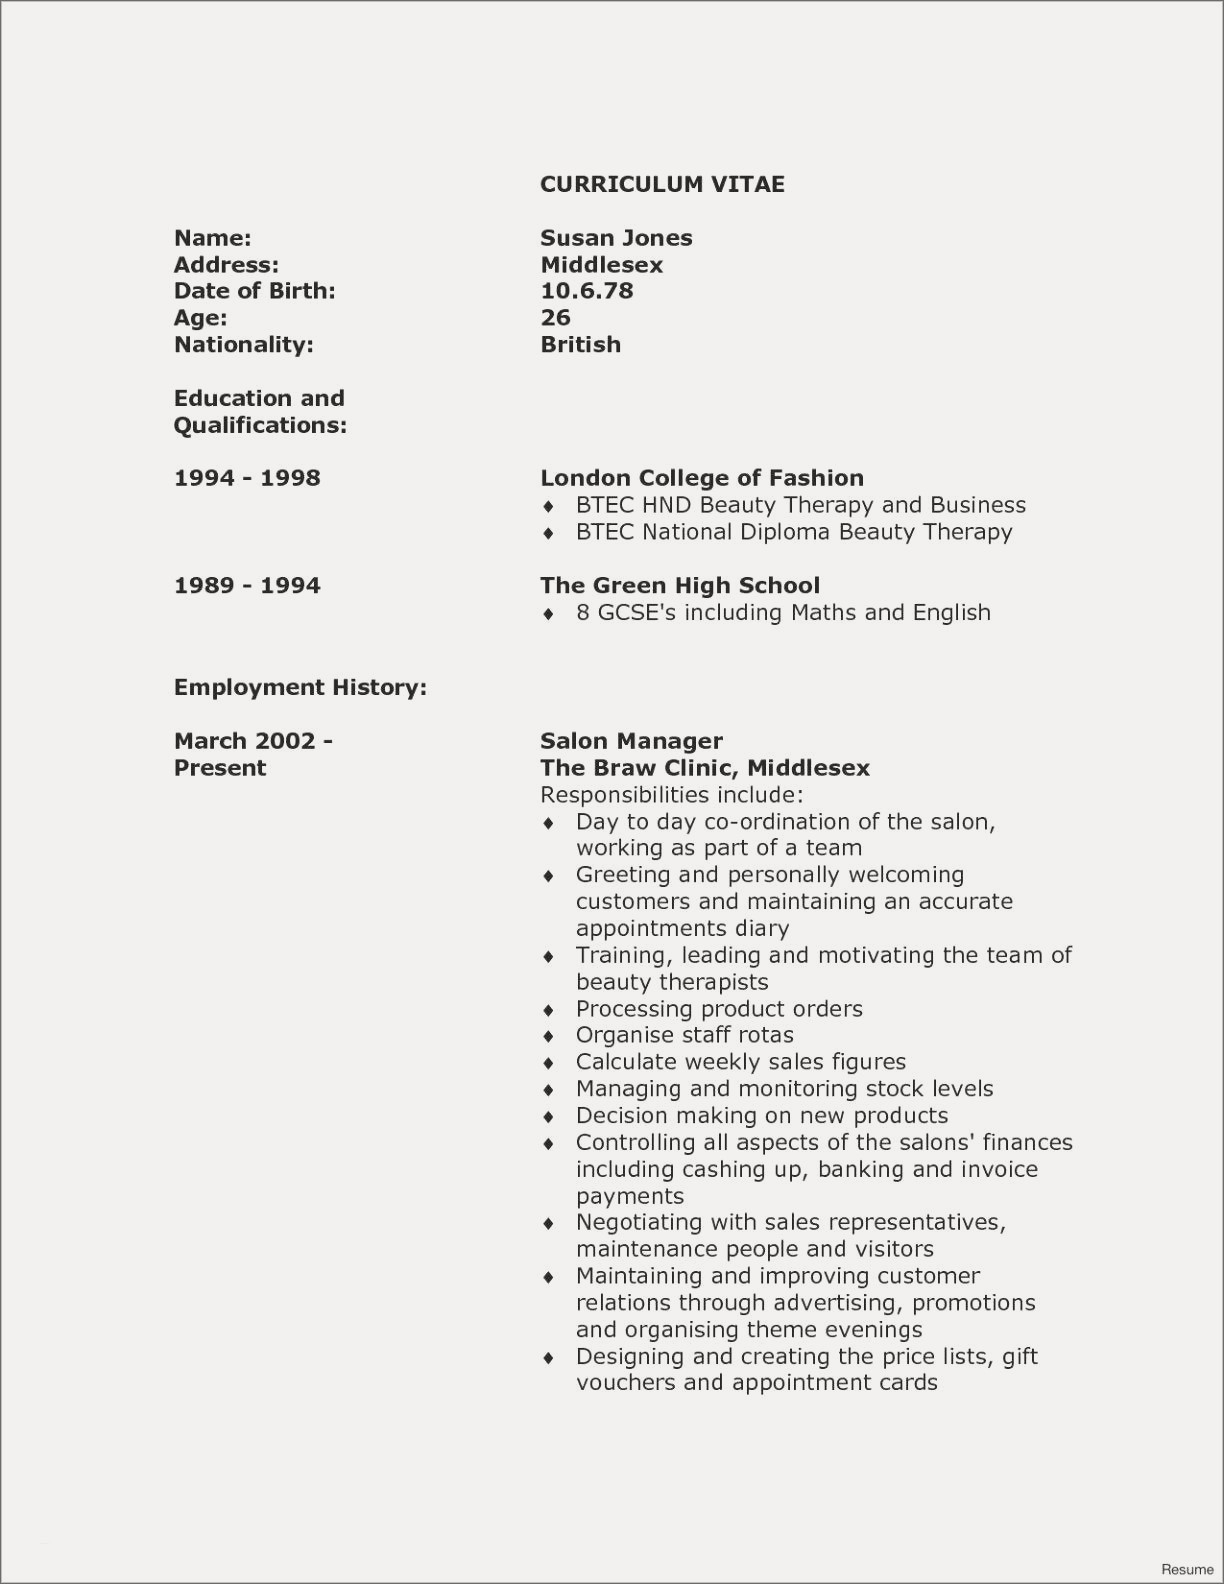 Resume Employment History - Standard Resume Objective New Teacher Resume Example Awesome Resume